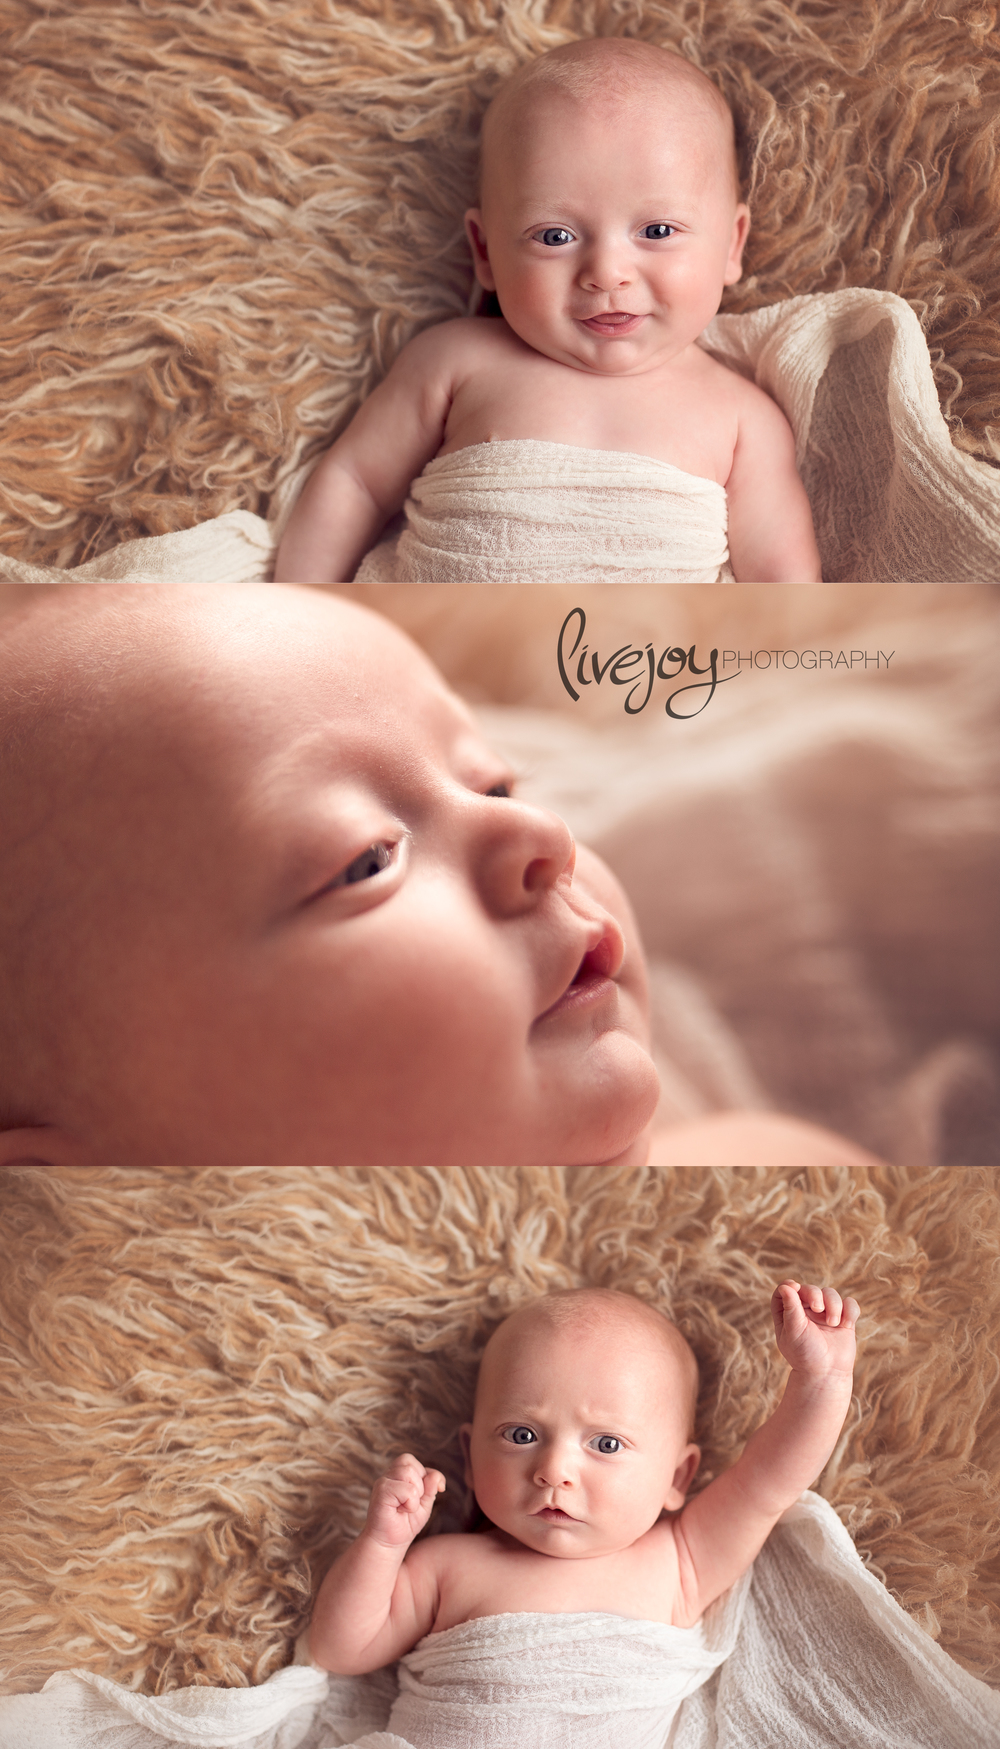 Baby Photos | LiveJoy Photography